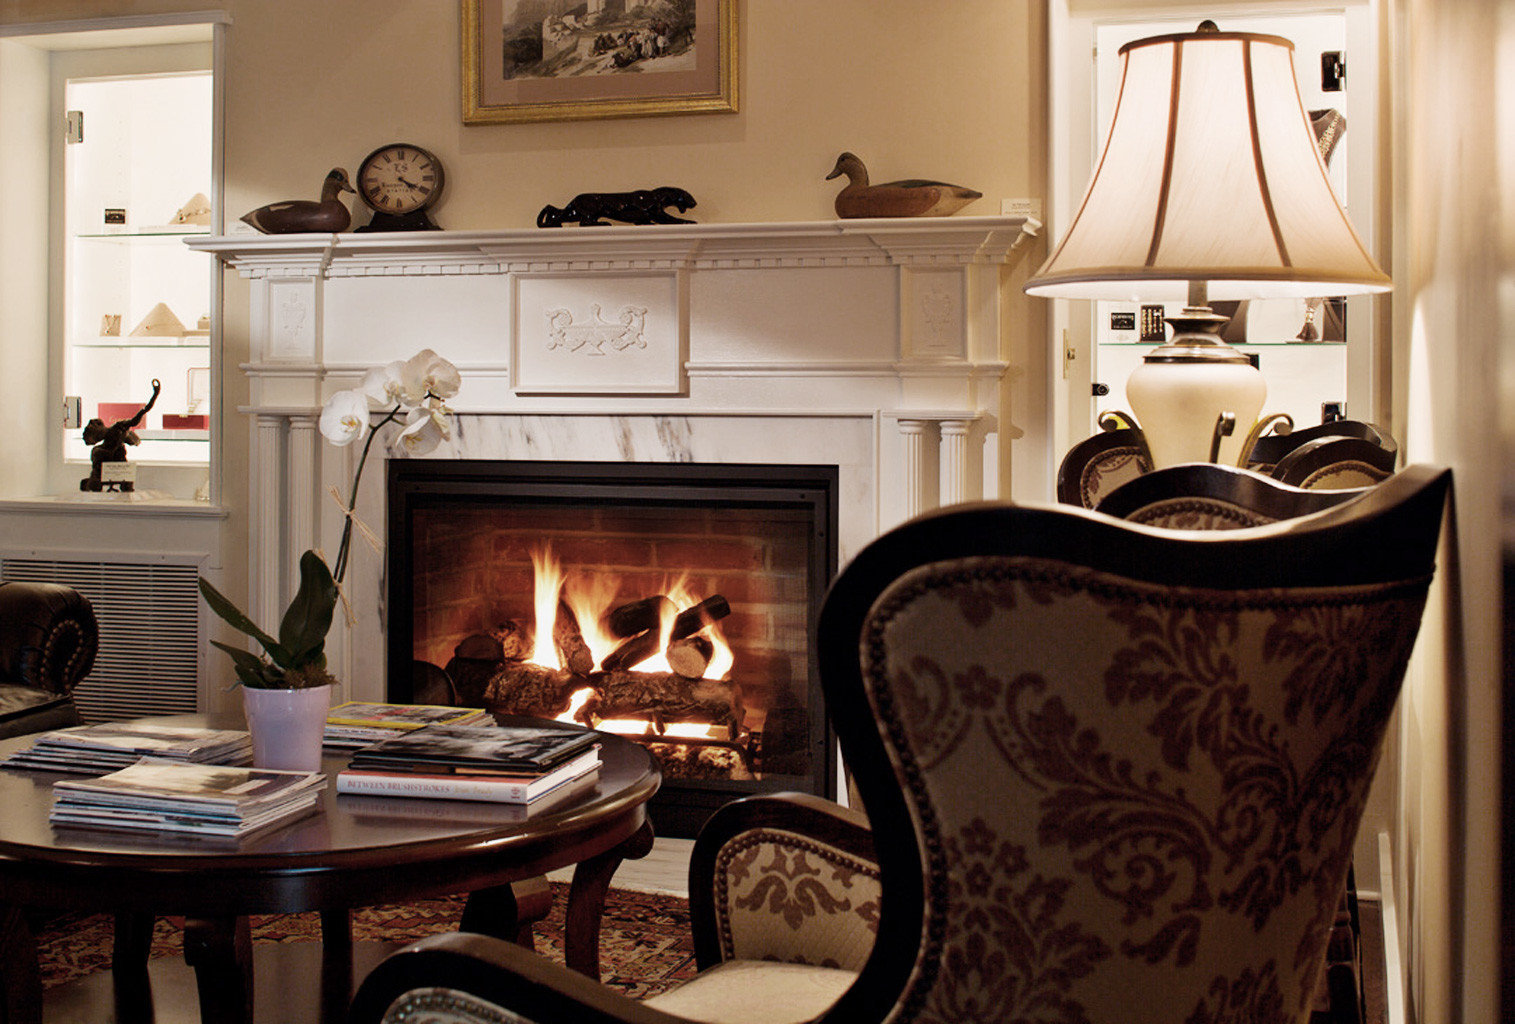 Classic Country Elegant Fireplace Inn Luxury property home living room cuisine classique cottage cabinetry Kitchen hearth